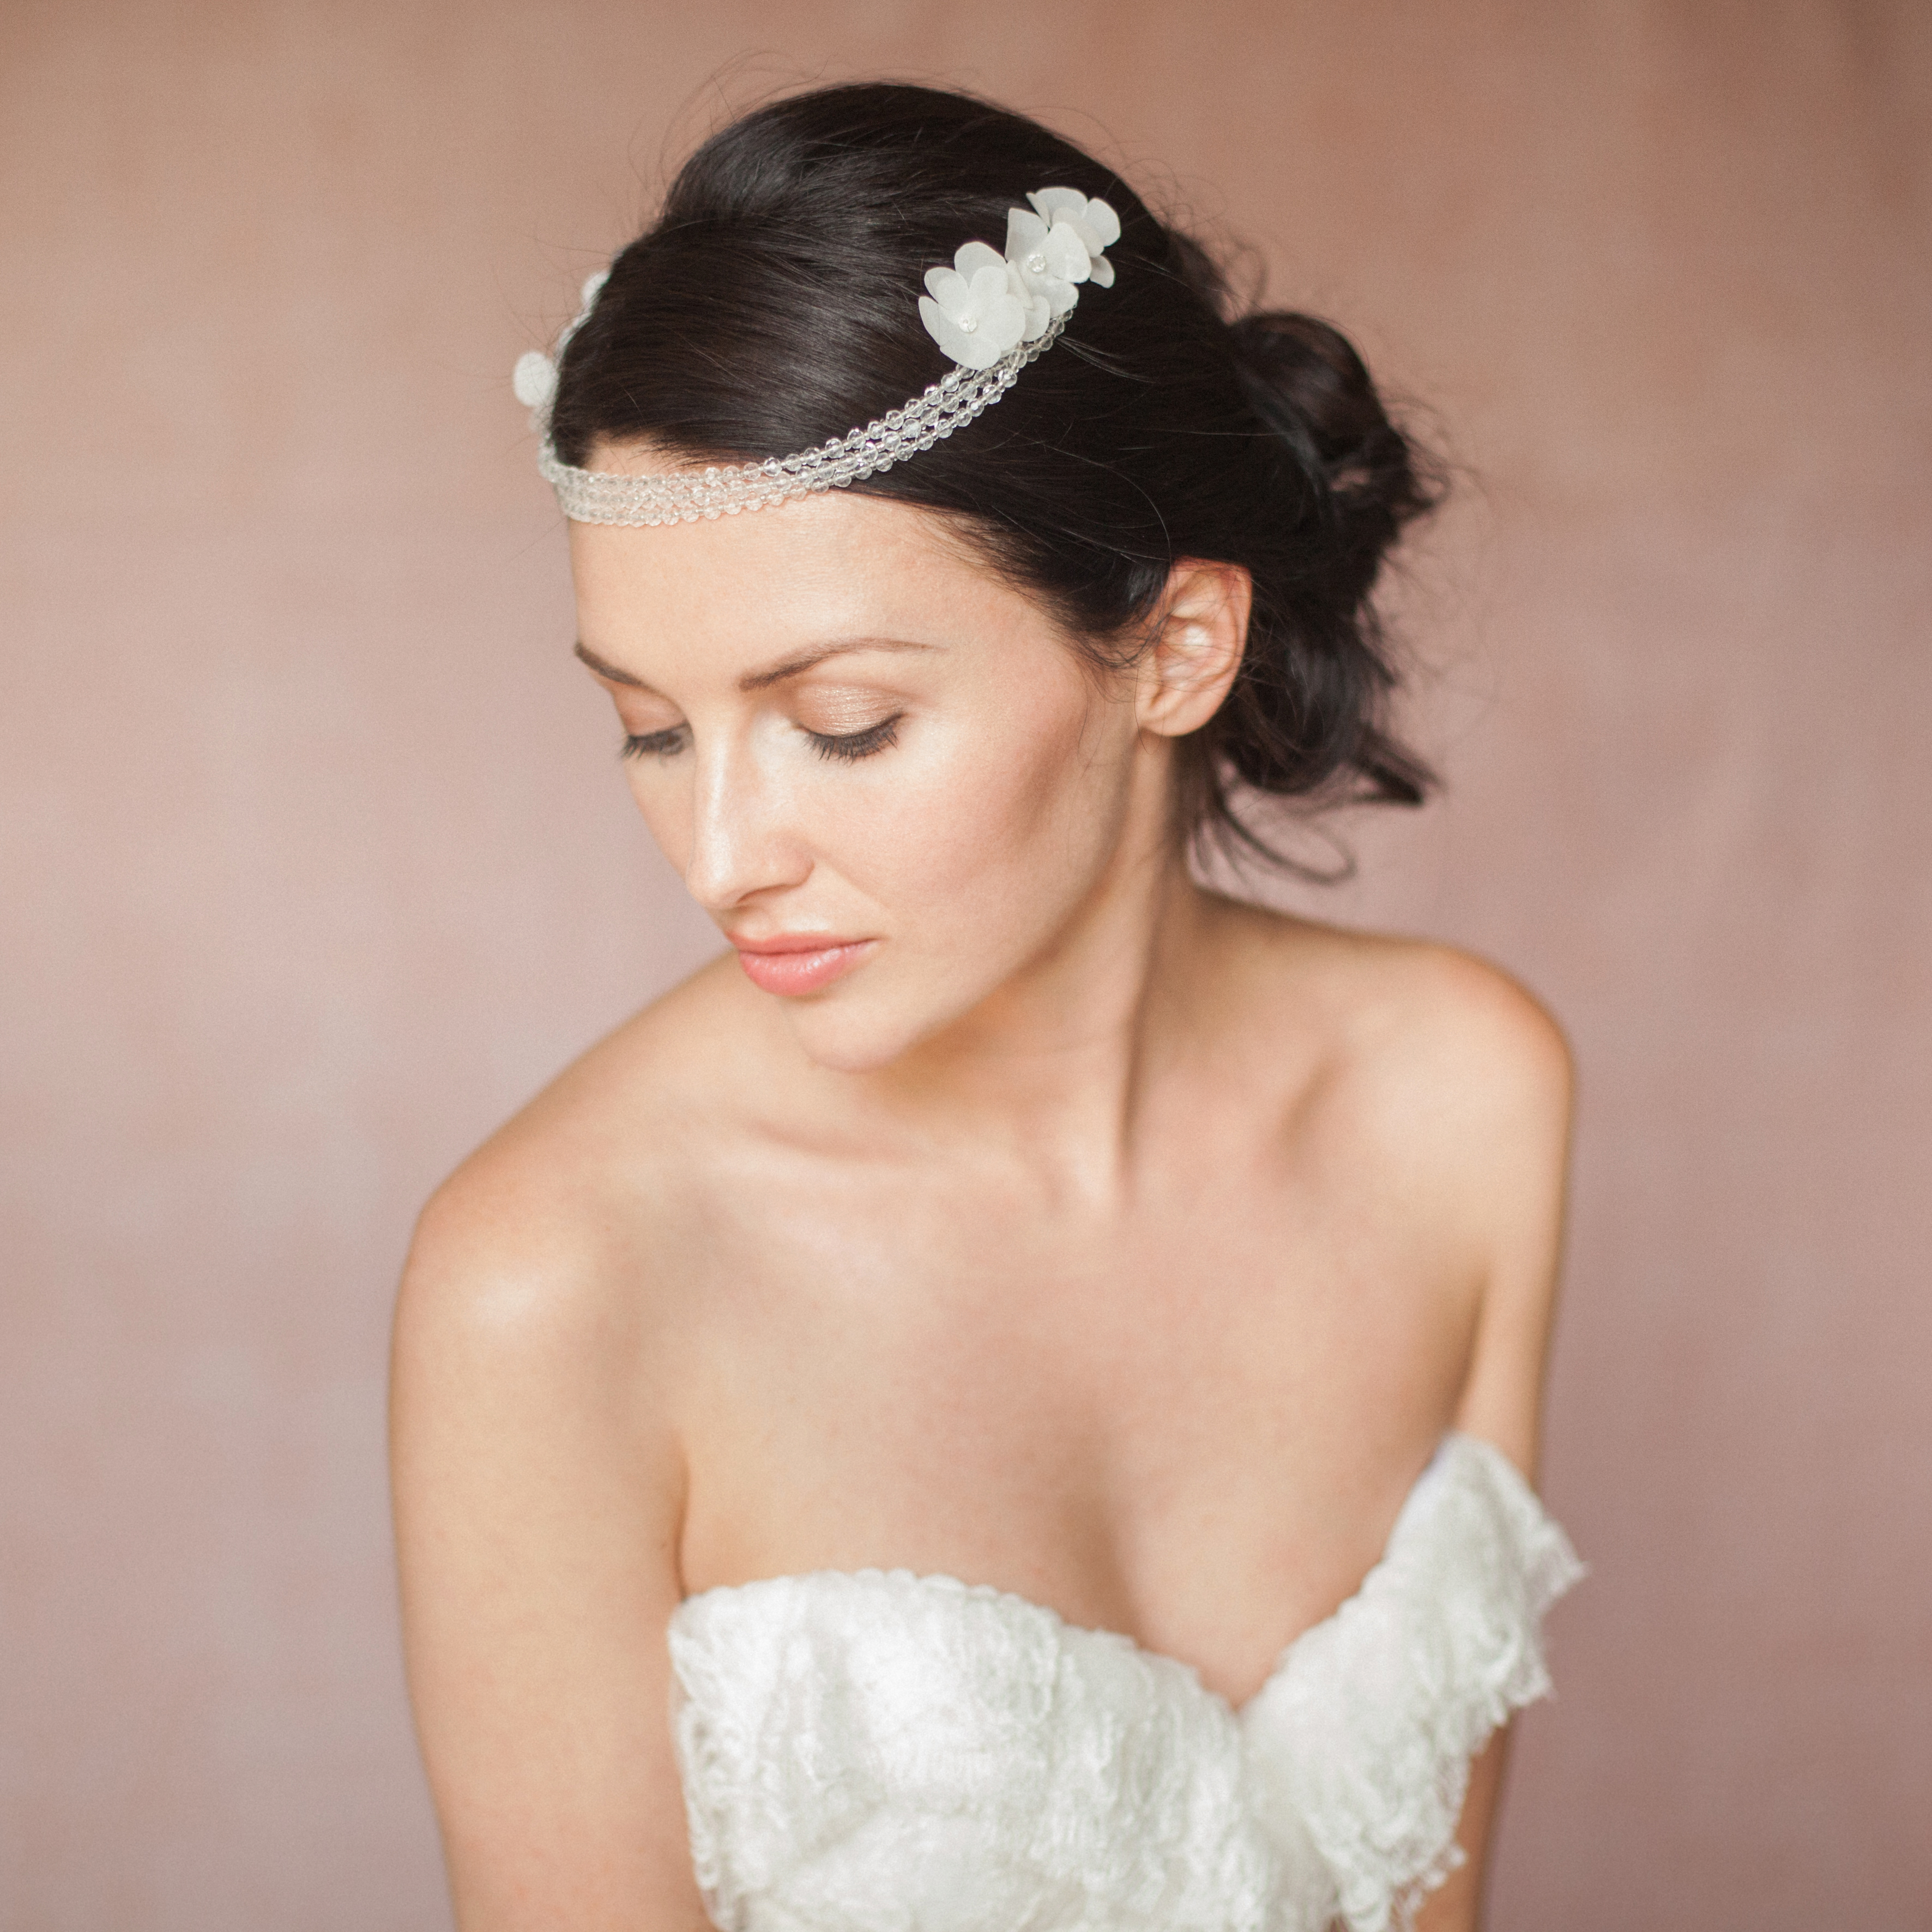 aria-wedding-bridal-silk-flower-haircombs-with-crystal-chains-by-britten